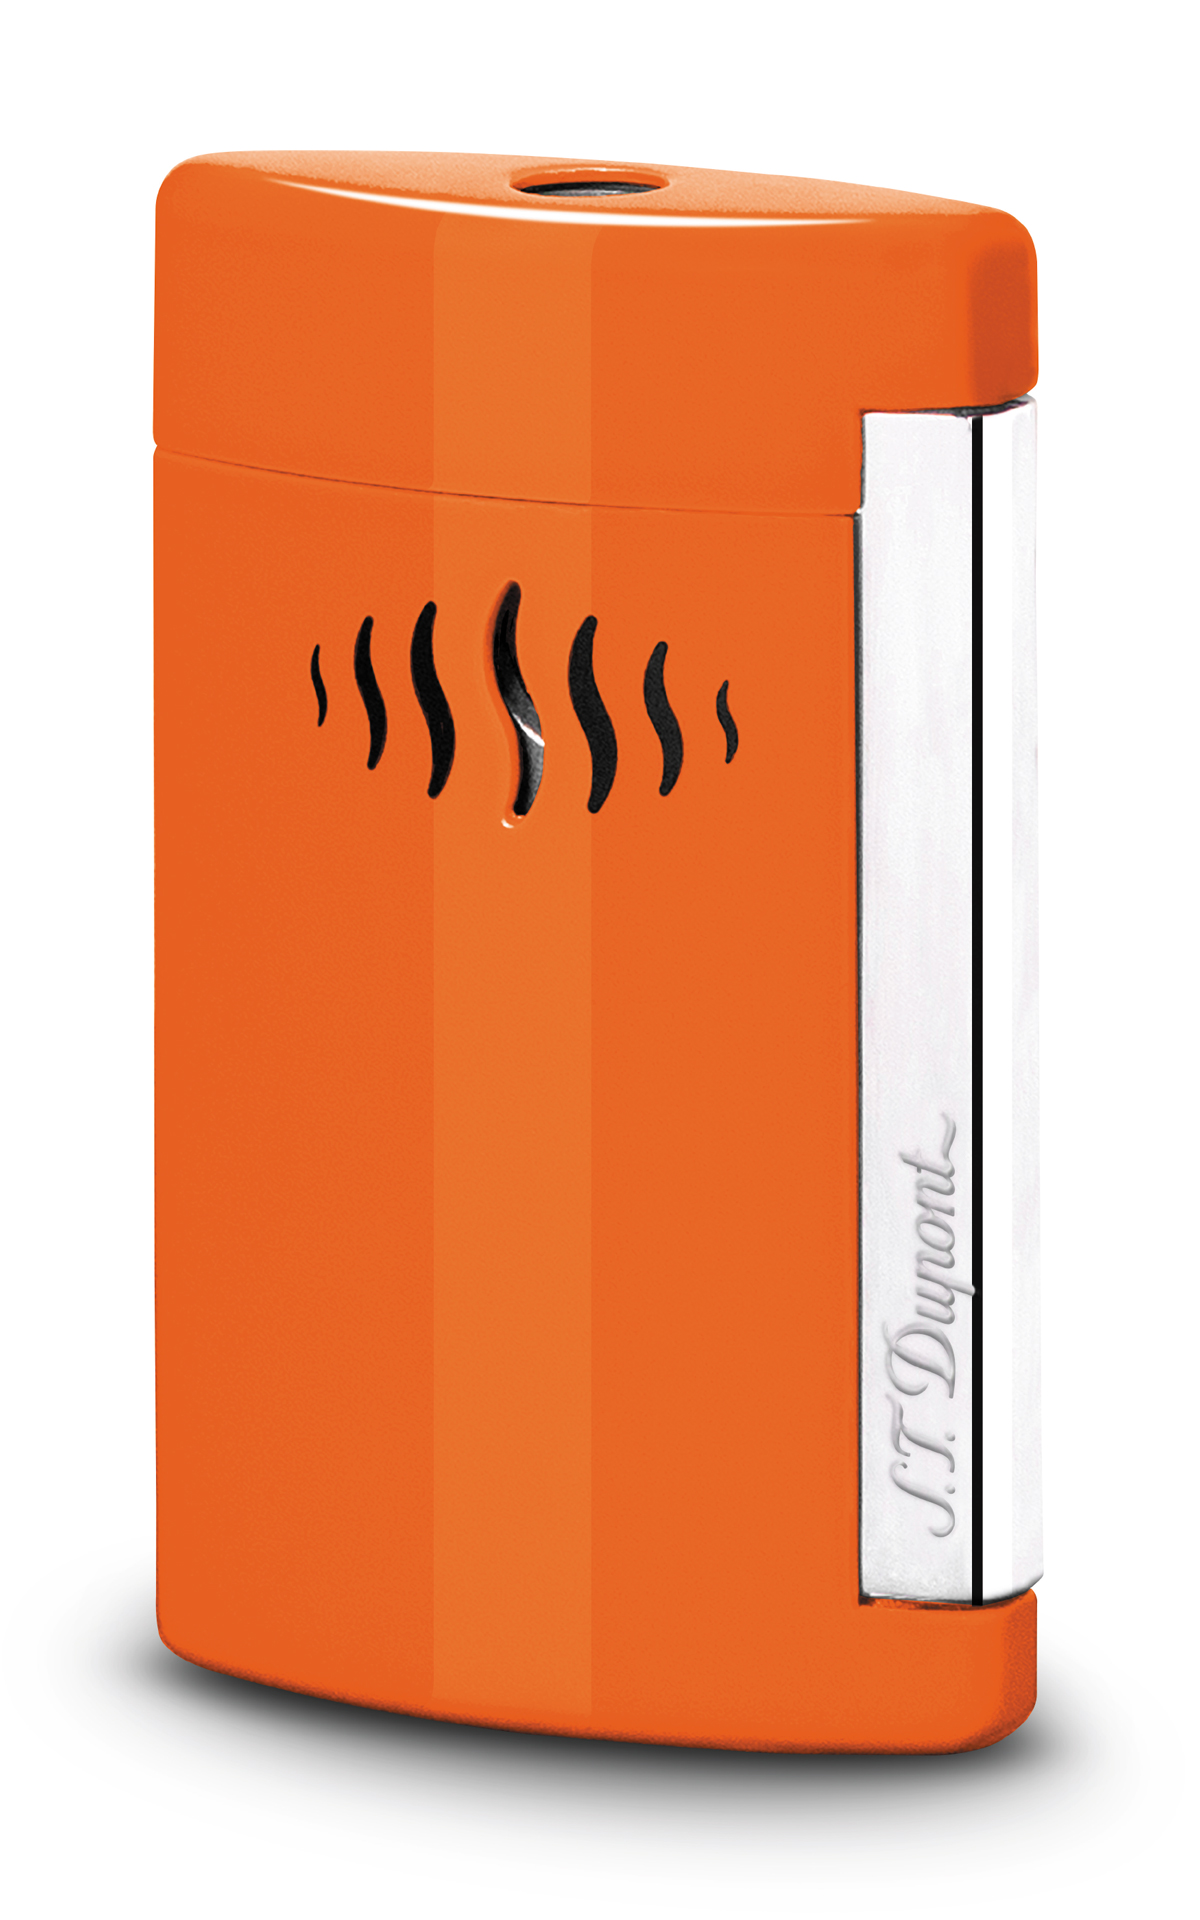 S.T.Dupont Briquet Minijet orange corail